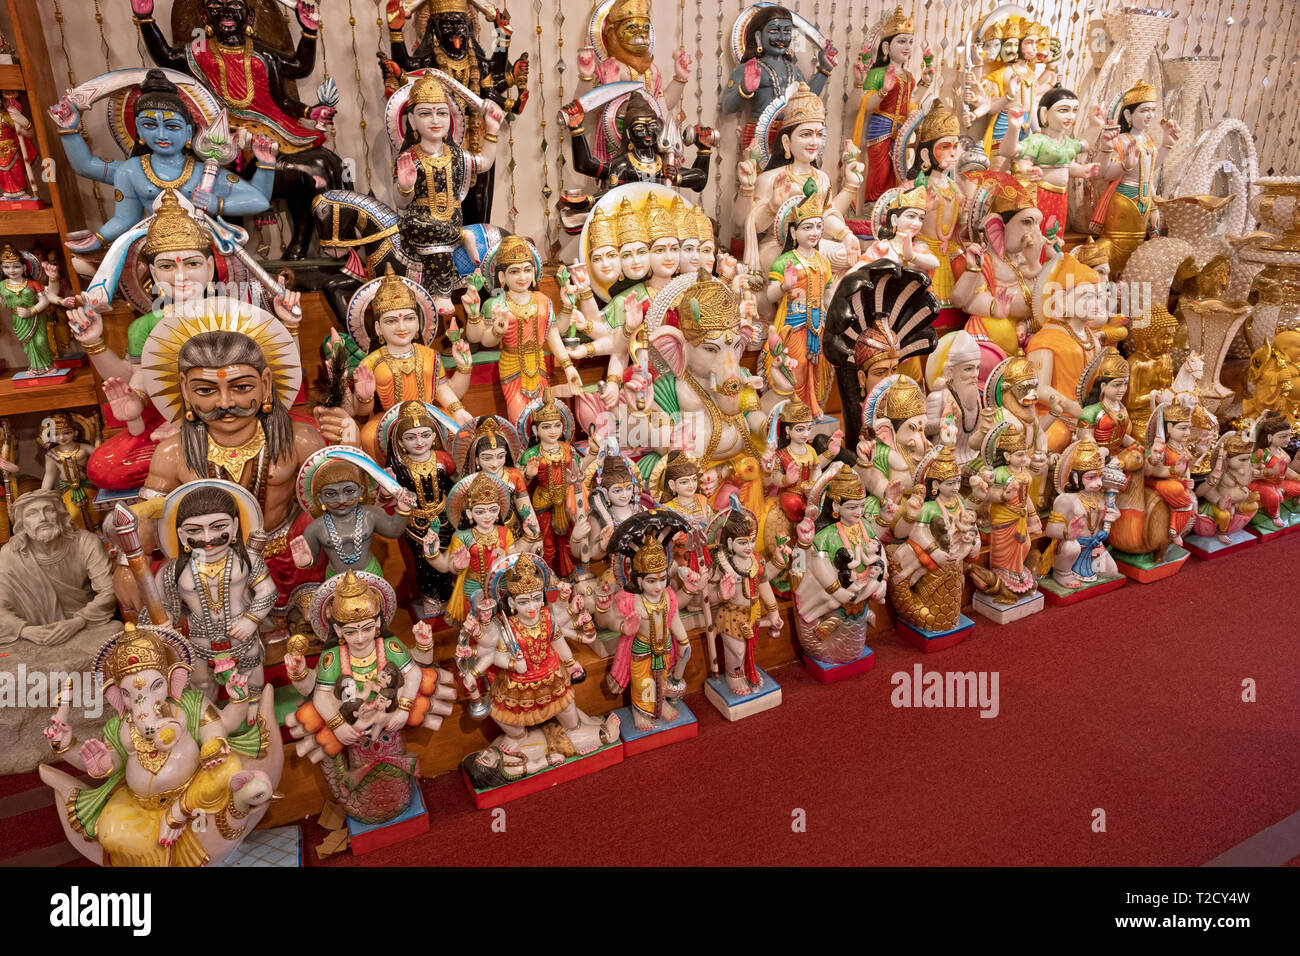 A large variety of statues of Hindu deities for sale at Maha Shakti, a store that sells religious items and ethnic clothing in Queens, New York. - Stock Image